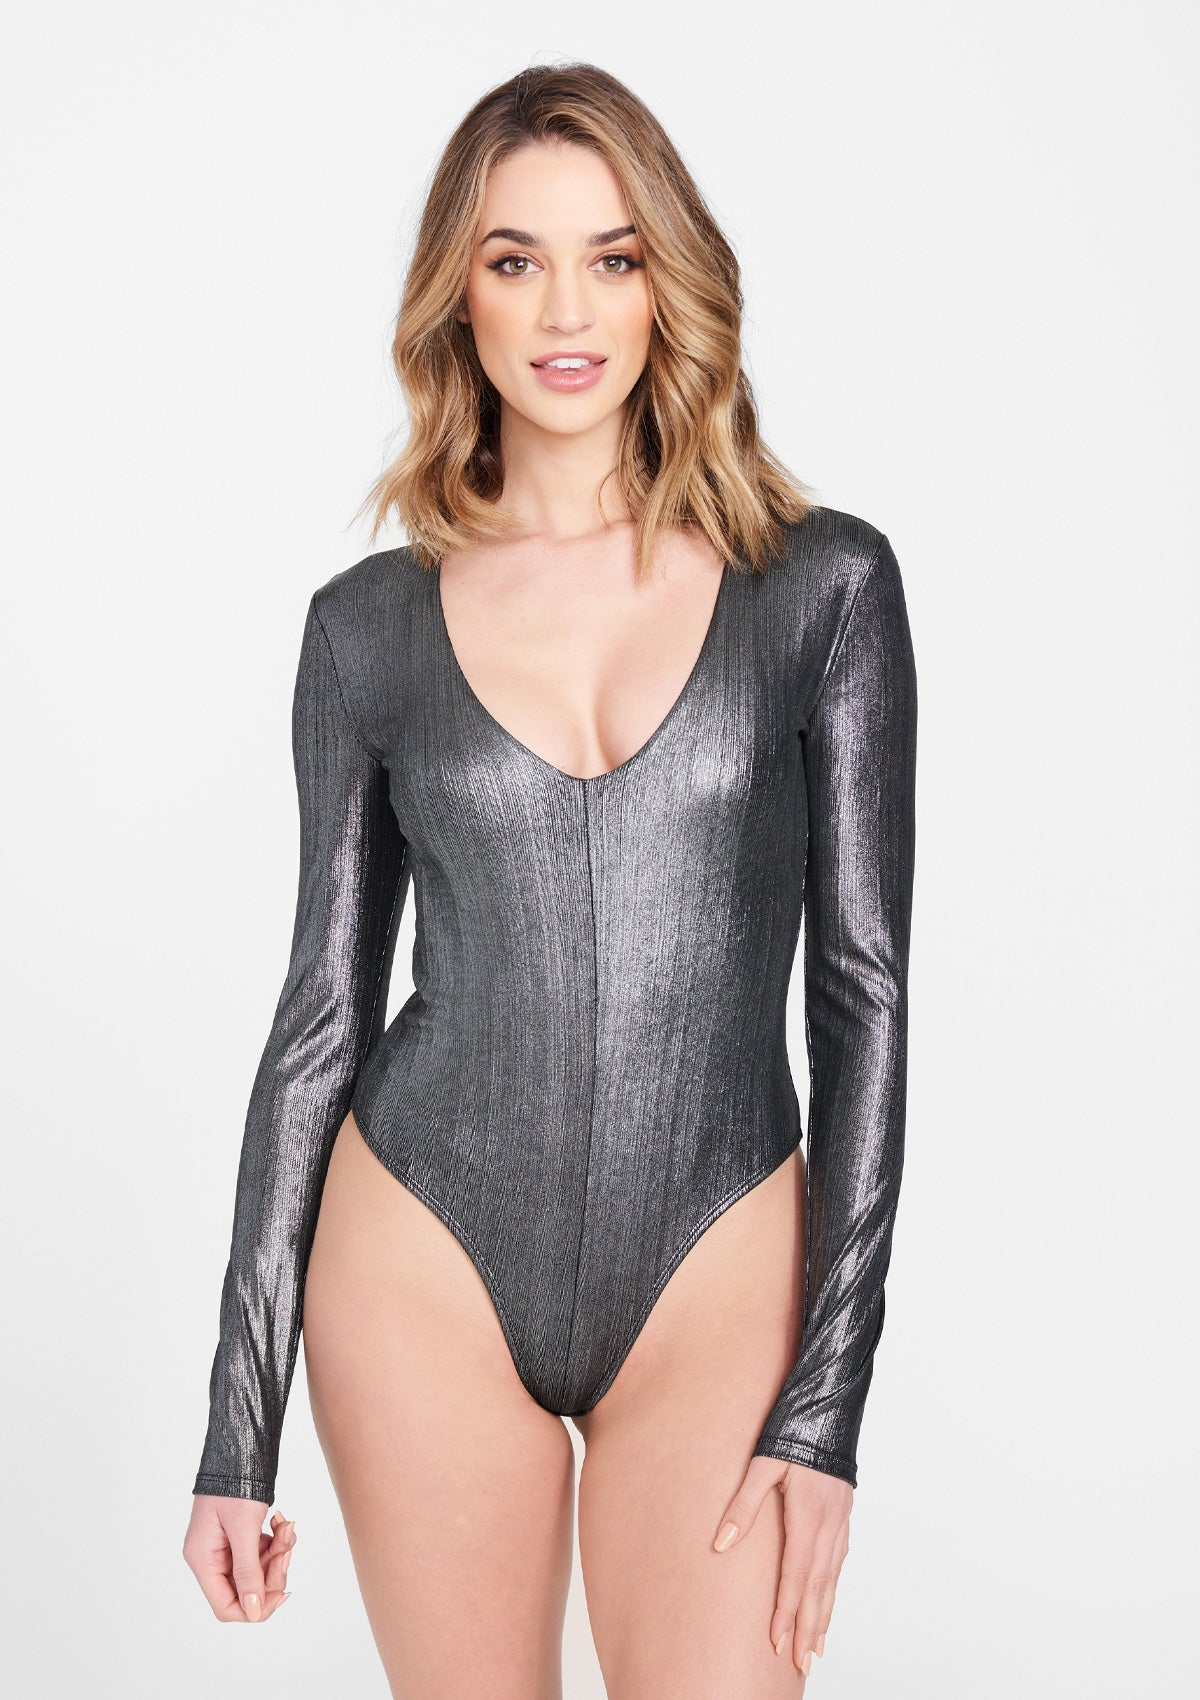 Alloy Apparel Tall Long Sleeve Plunge Bodysuit for Women in Silver Size M   Polyester